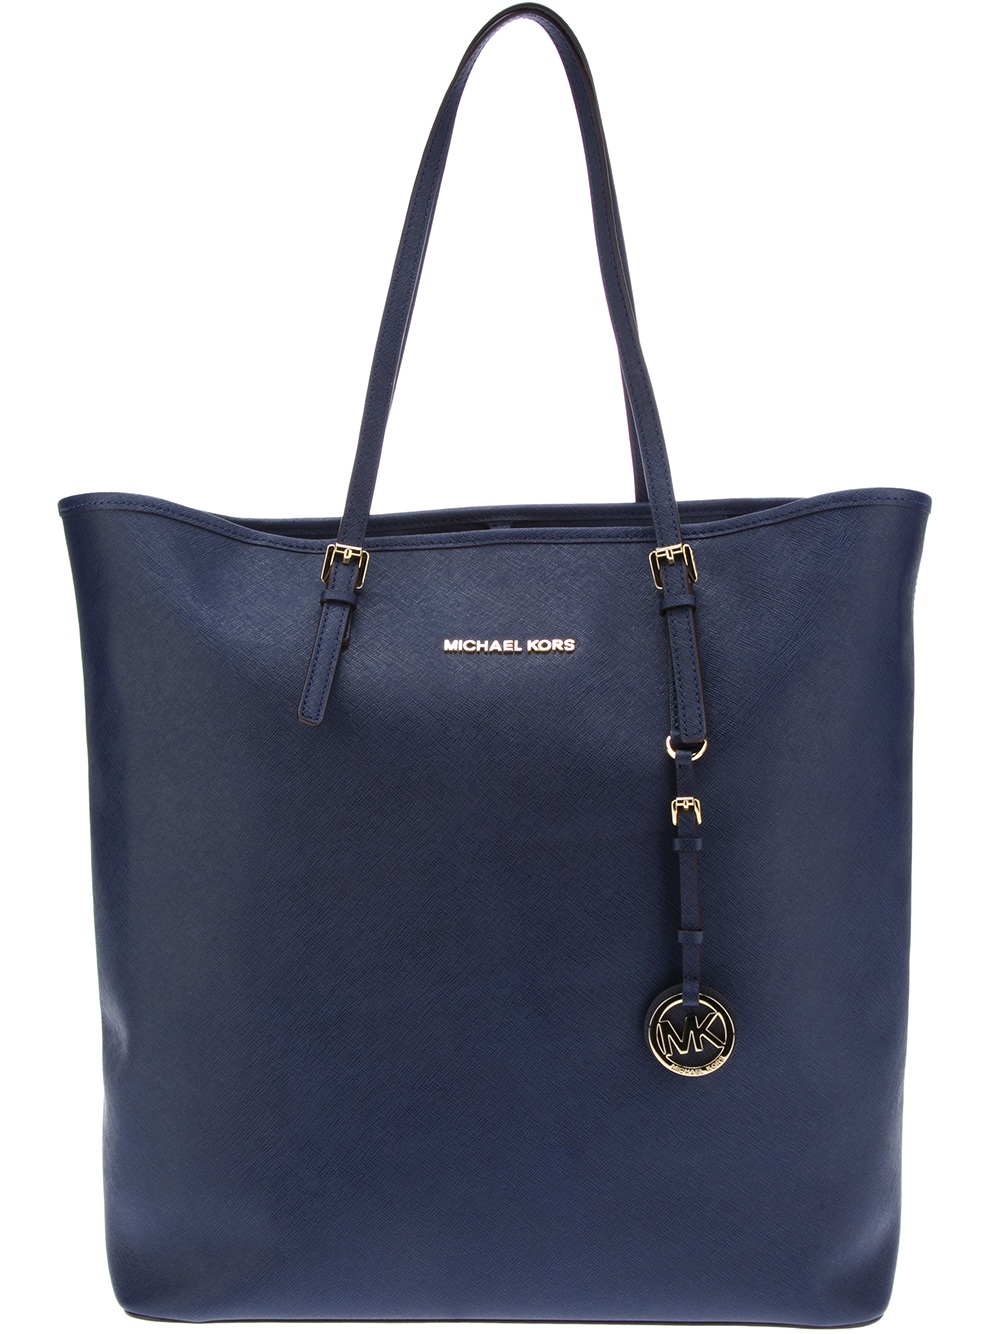 michael michael kors large shopping tote in blue navy lyst. Black Bedroom Furniture Sets. Home Design Ideas